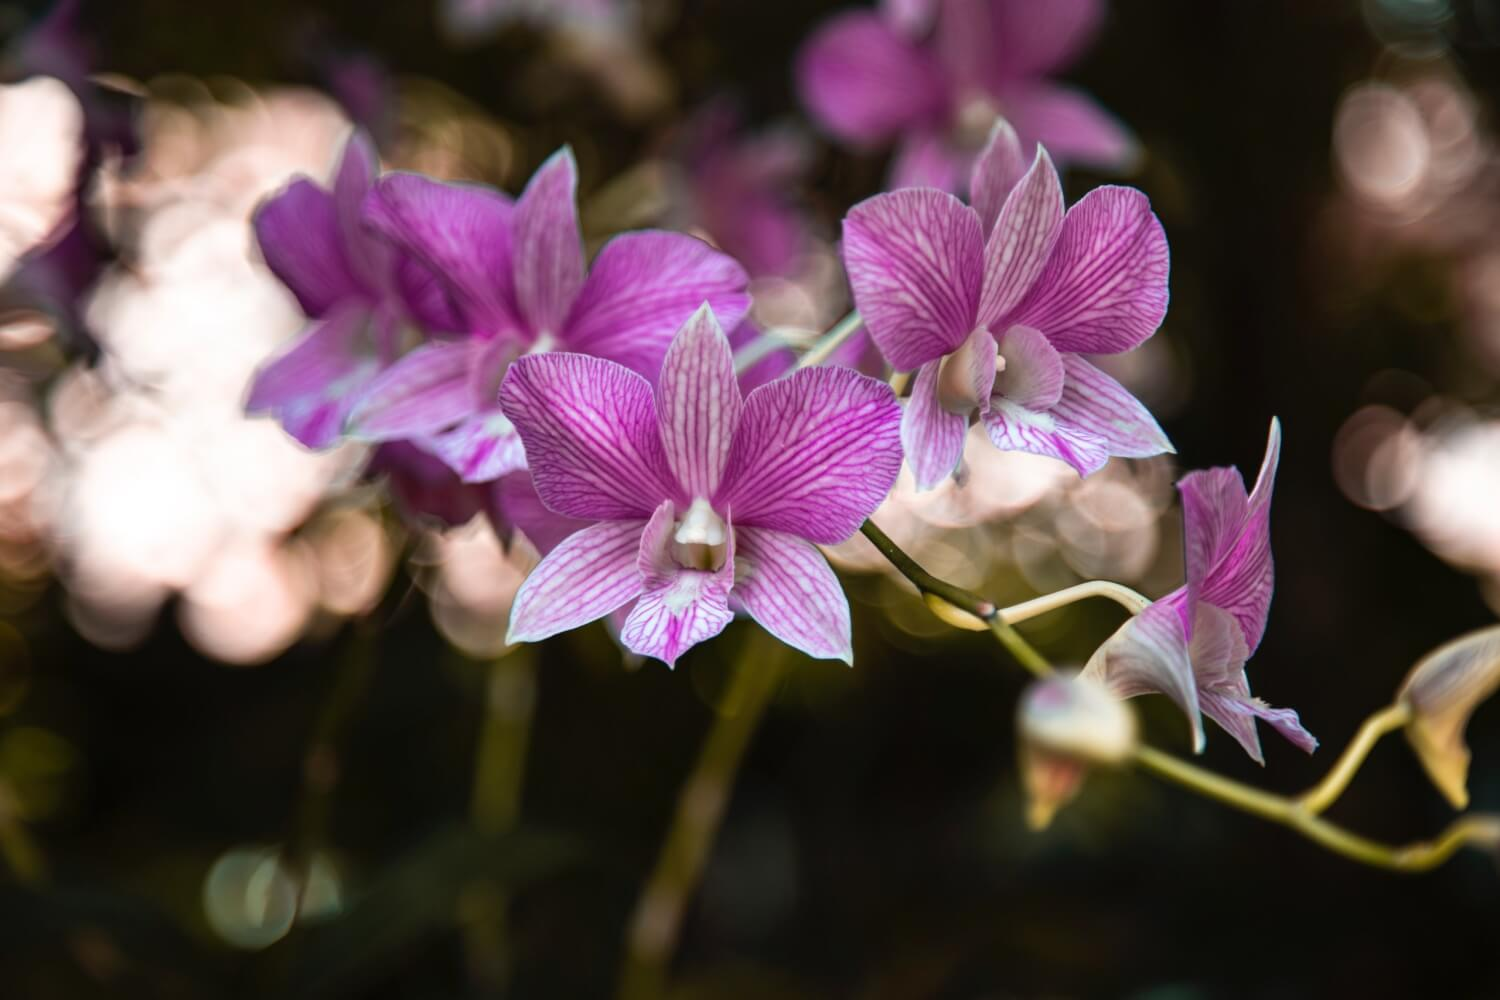 melissa: the orchid plant